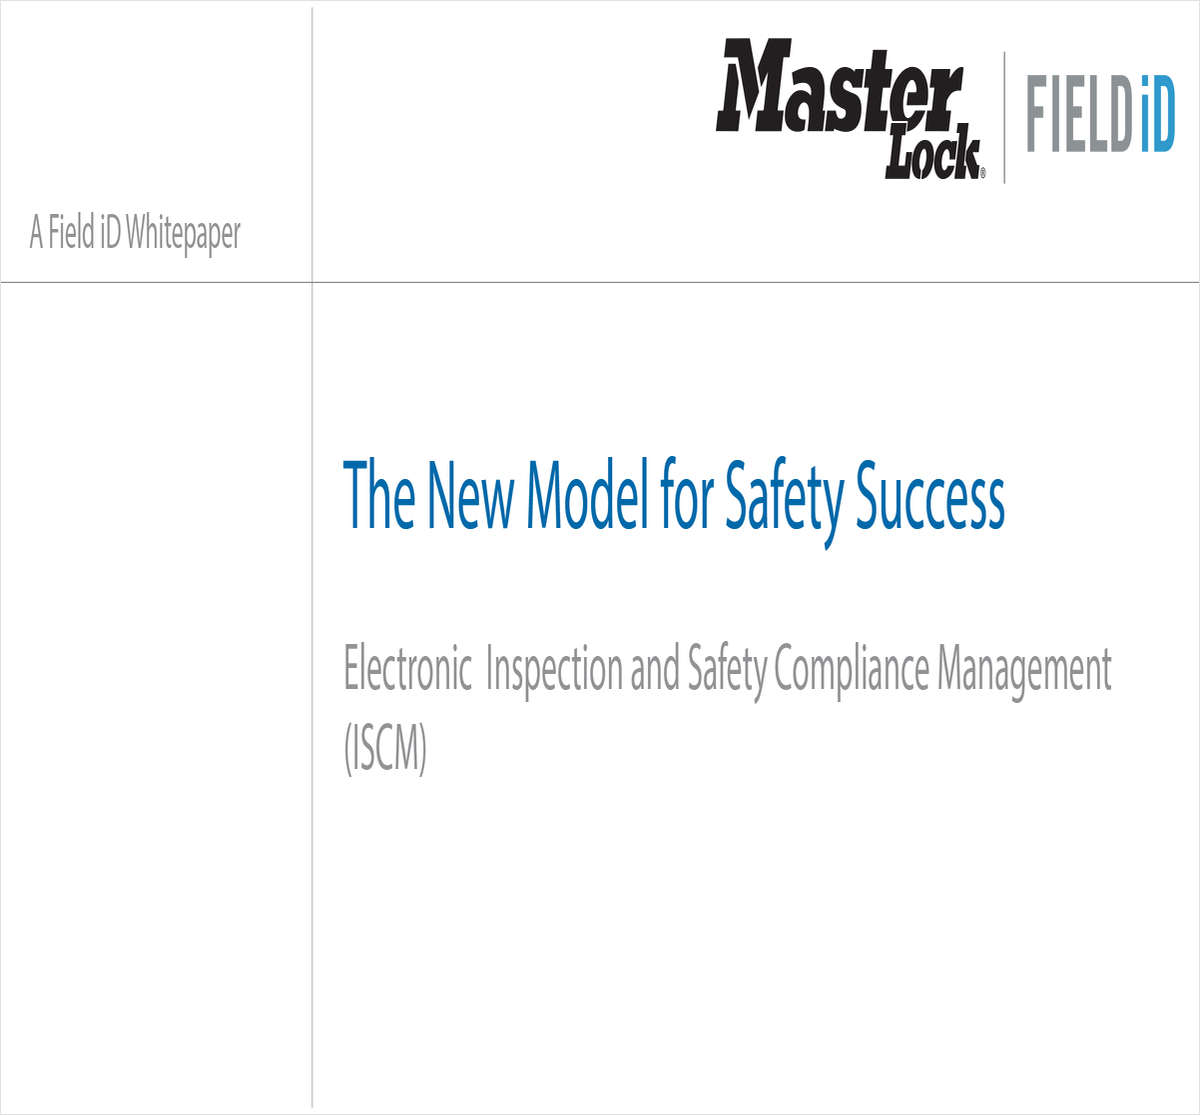 The New Model for Safety Success